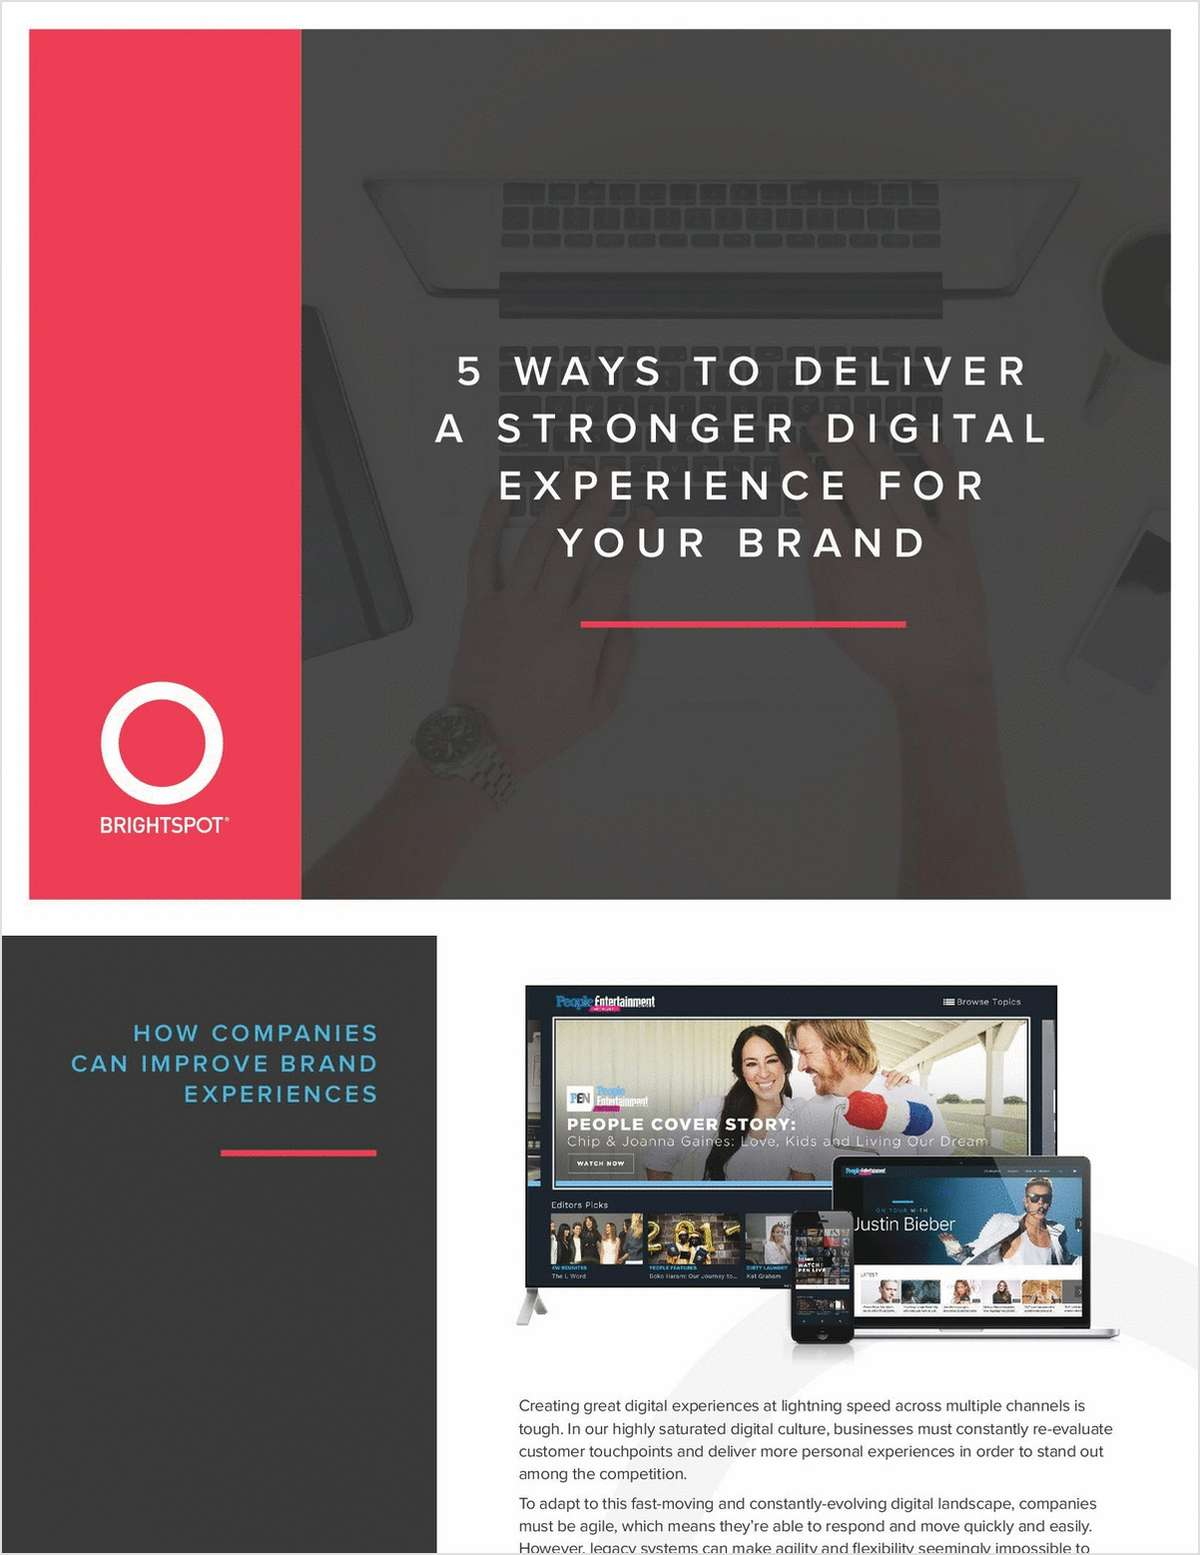 5 Ways to Deliver a Stronger Digital Experience for Your Brand